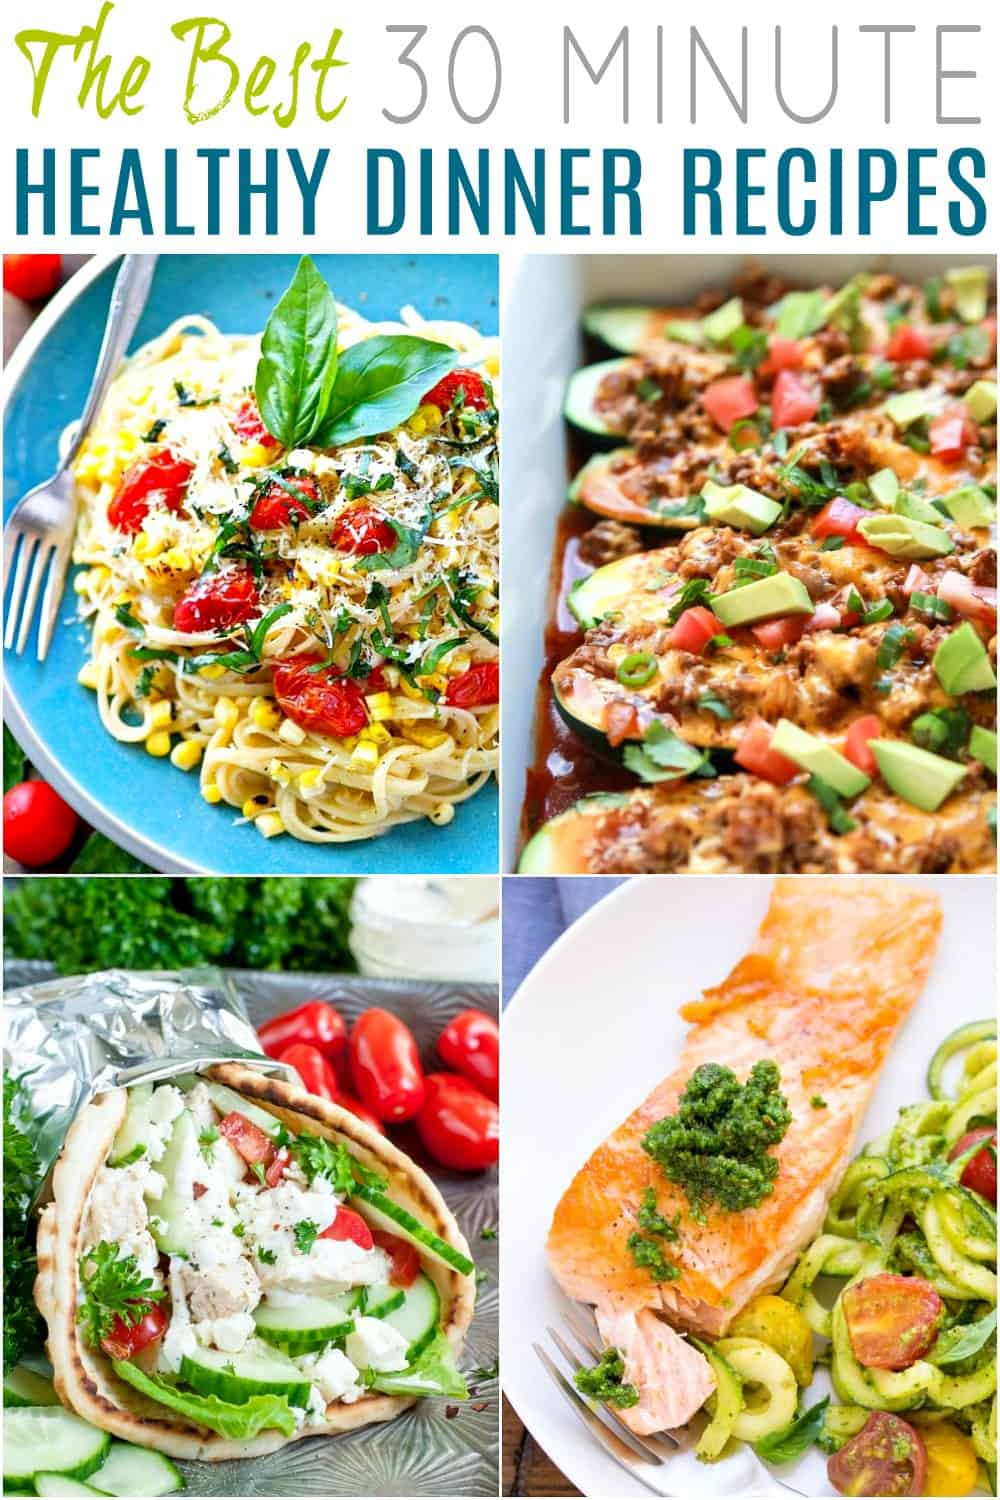 A Collage of Four Easy and Healthy Dinner Recipes